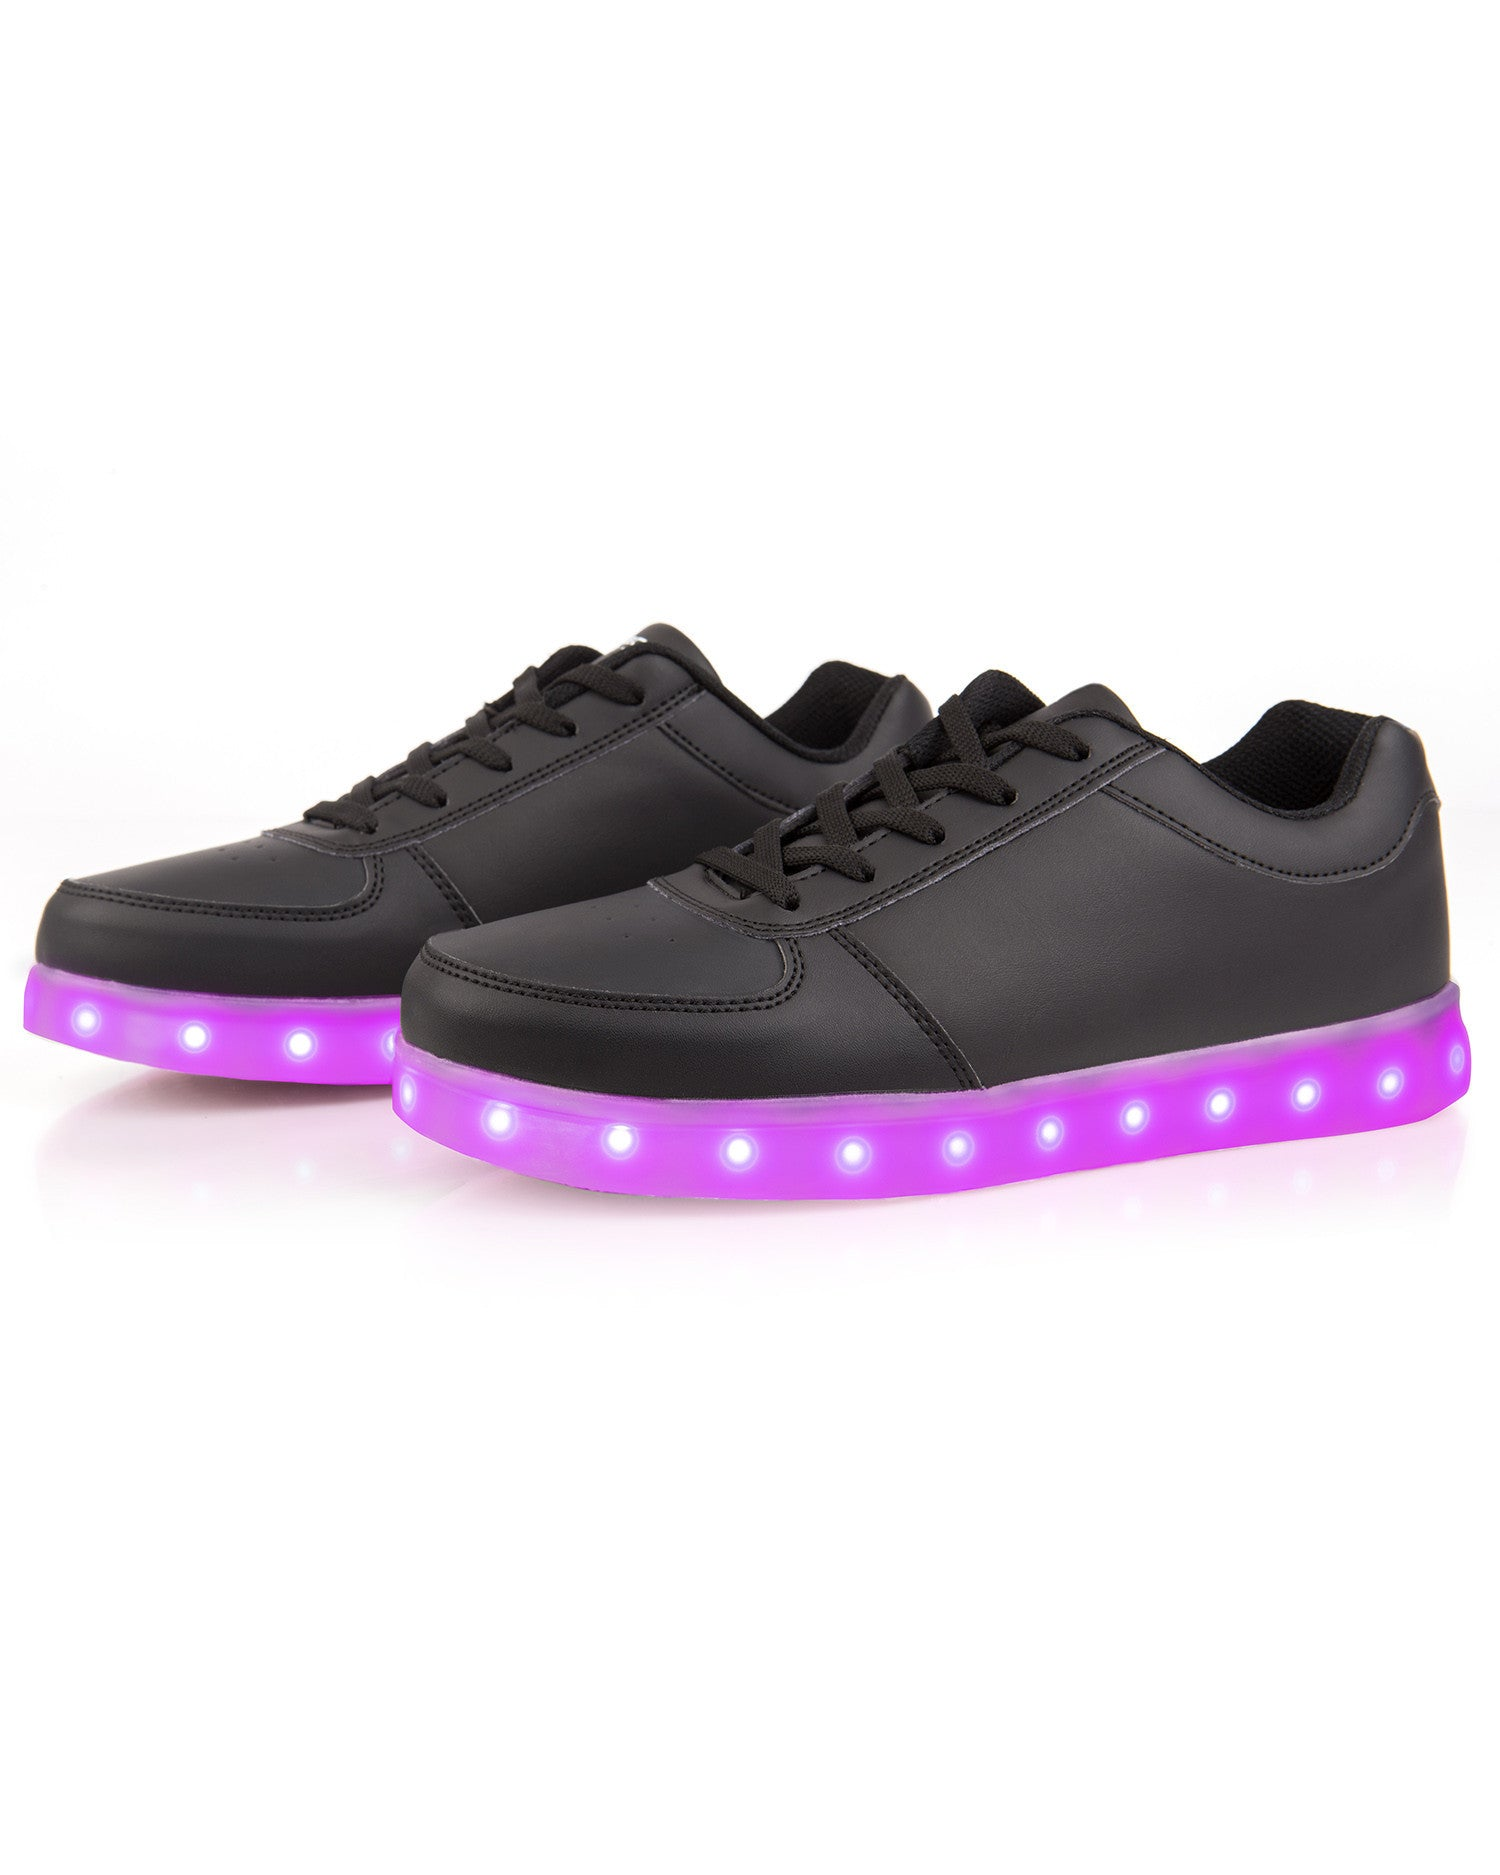 Electric Shoes - All Black - Electric Styles | World's Number 1 Light Up Shoe Store - {product_type}} -  - 5